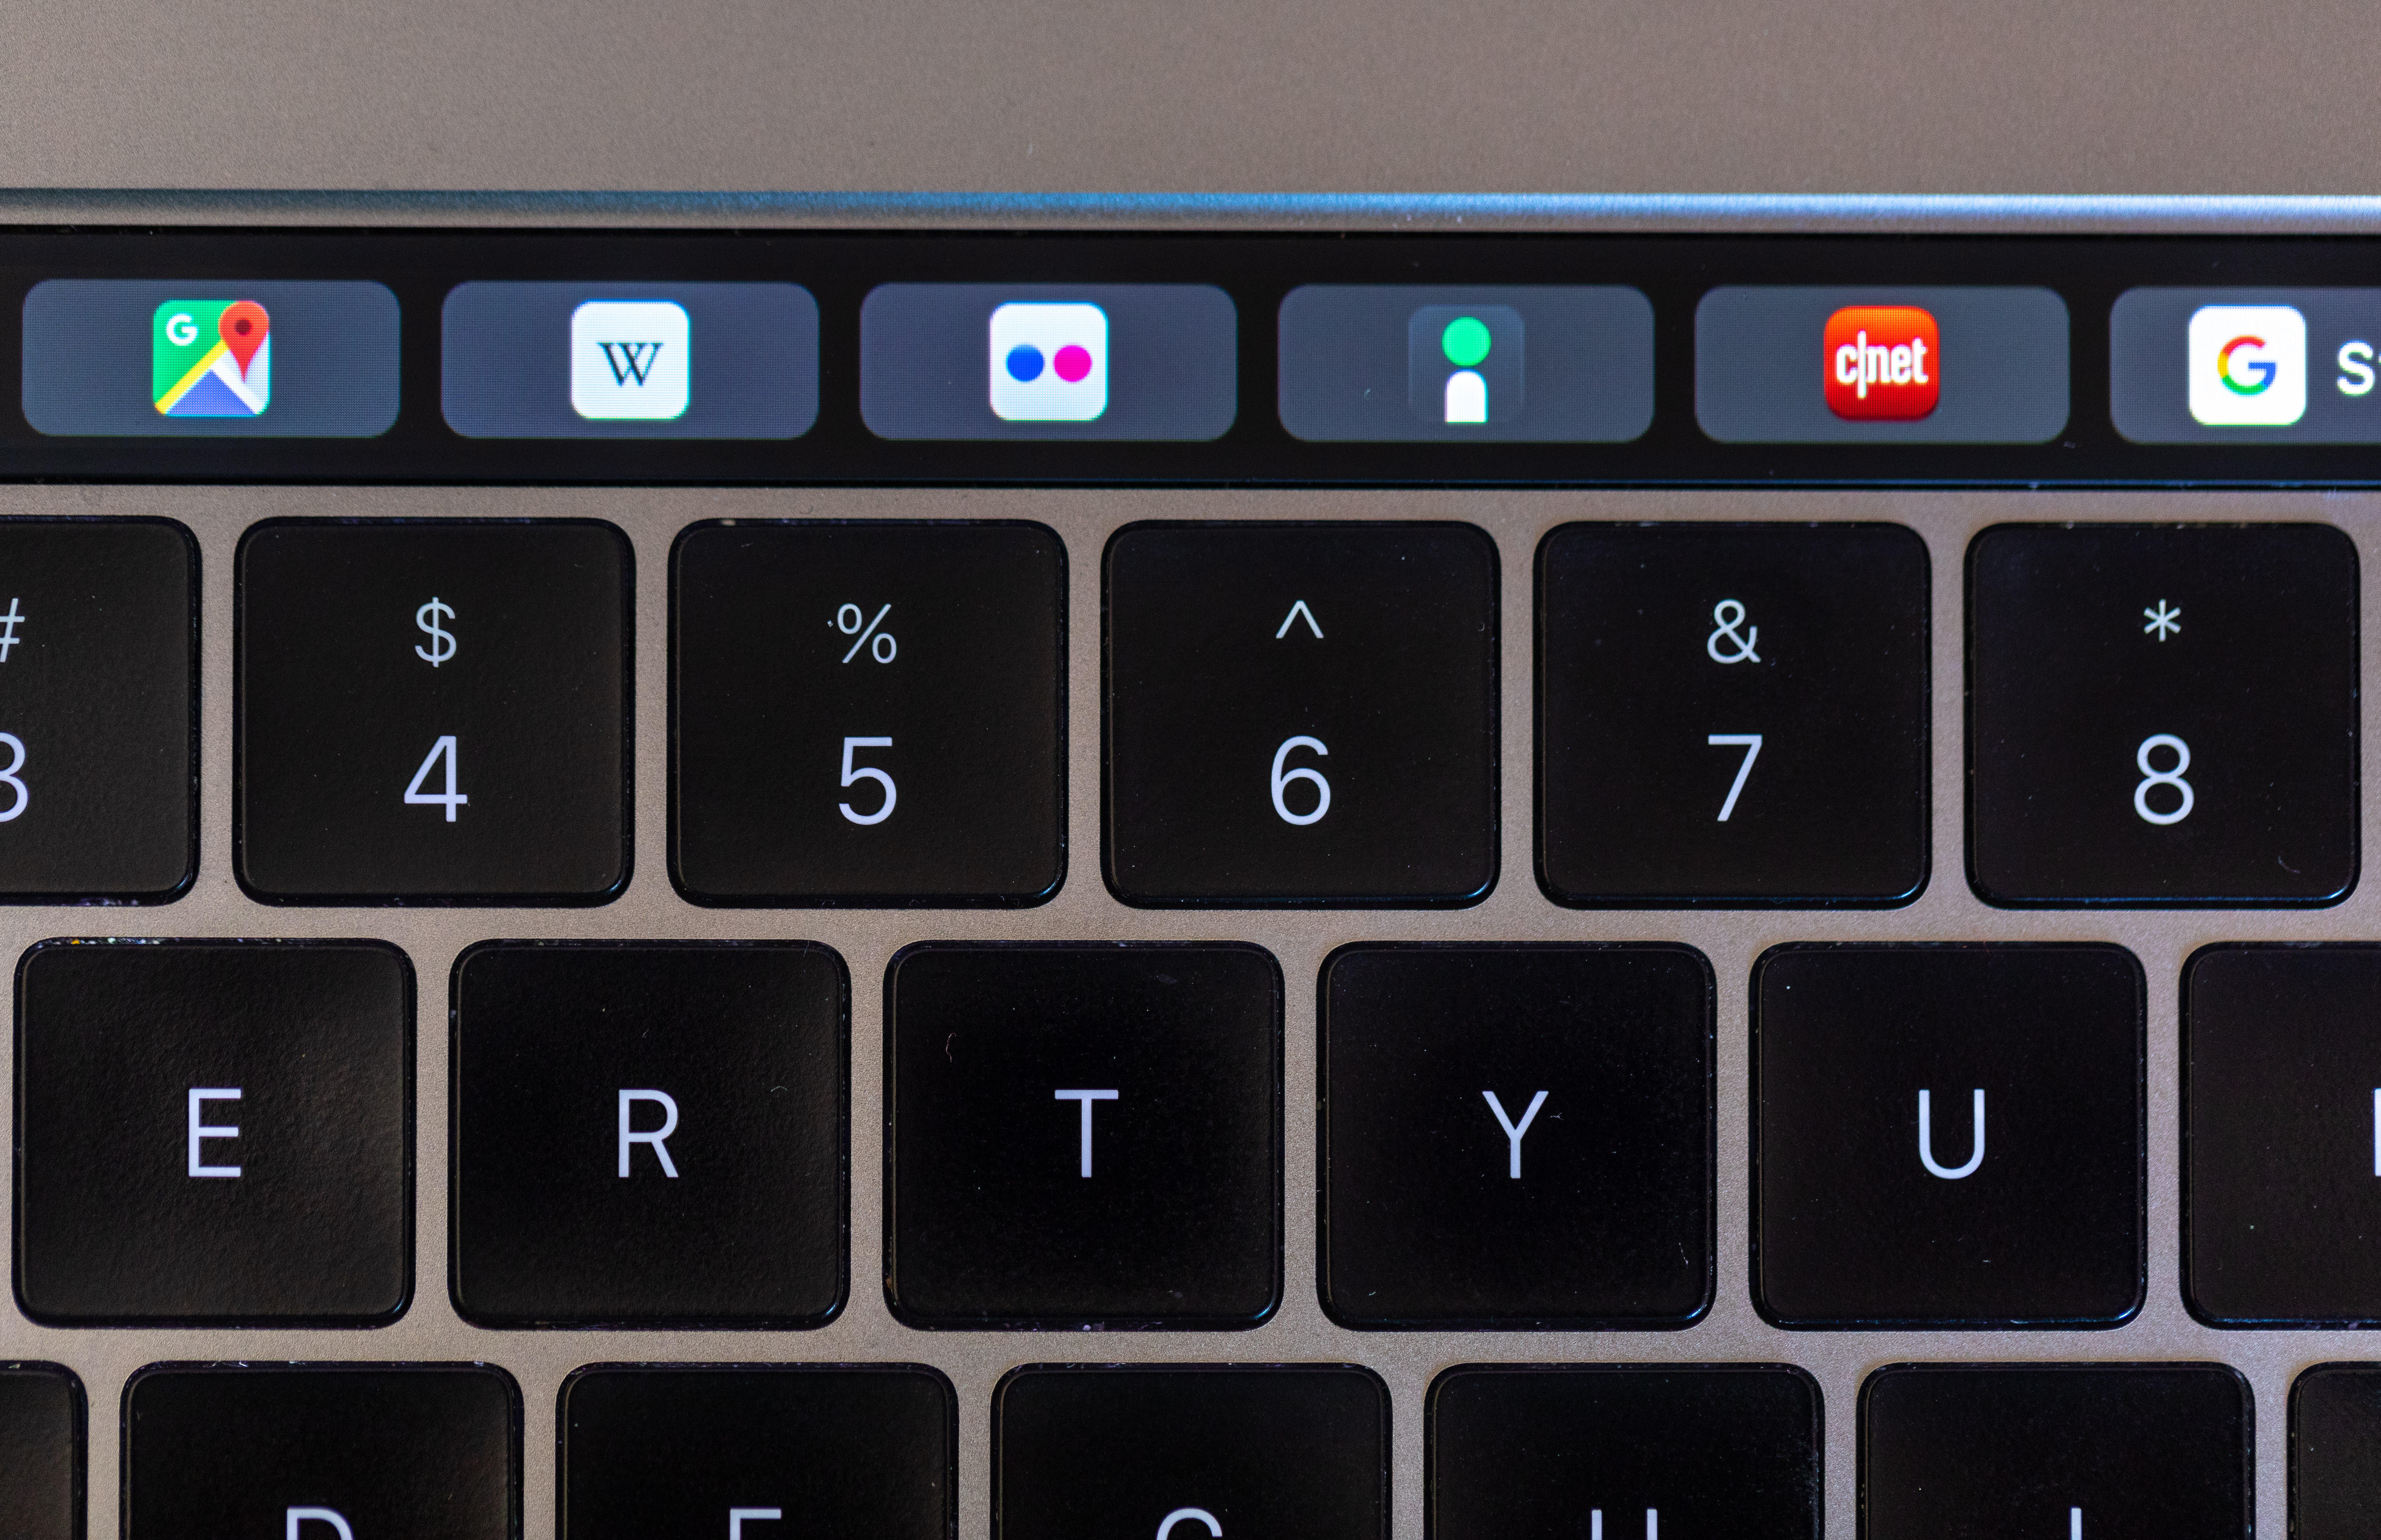 Apple has shunned website favicons on Safari, but they show on MacBook Pro Touch Bar when opening a new tab in Safari.